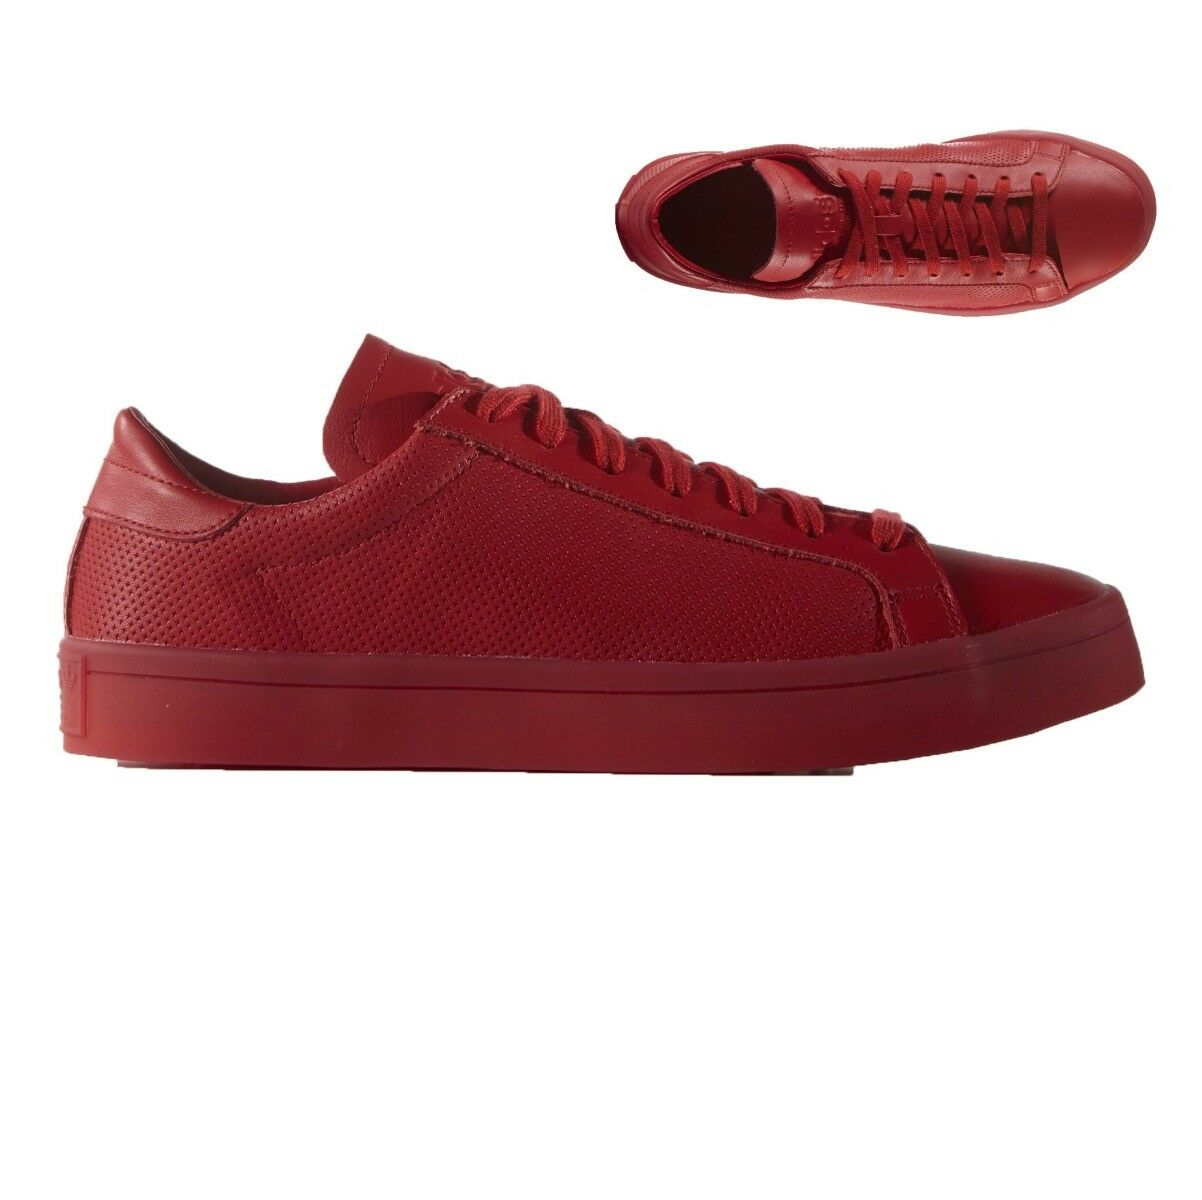 Adidas courtvantage adicolor homme Trainer Rouge Chaussure UK Taille 8 RRP £ 67/-